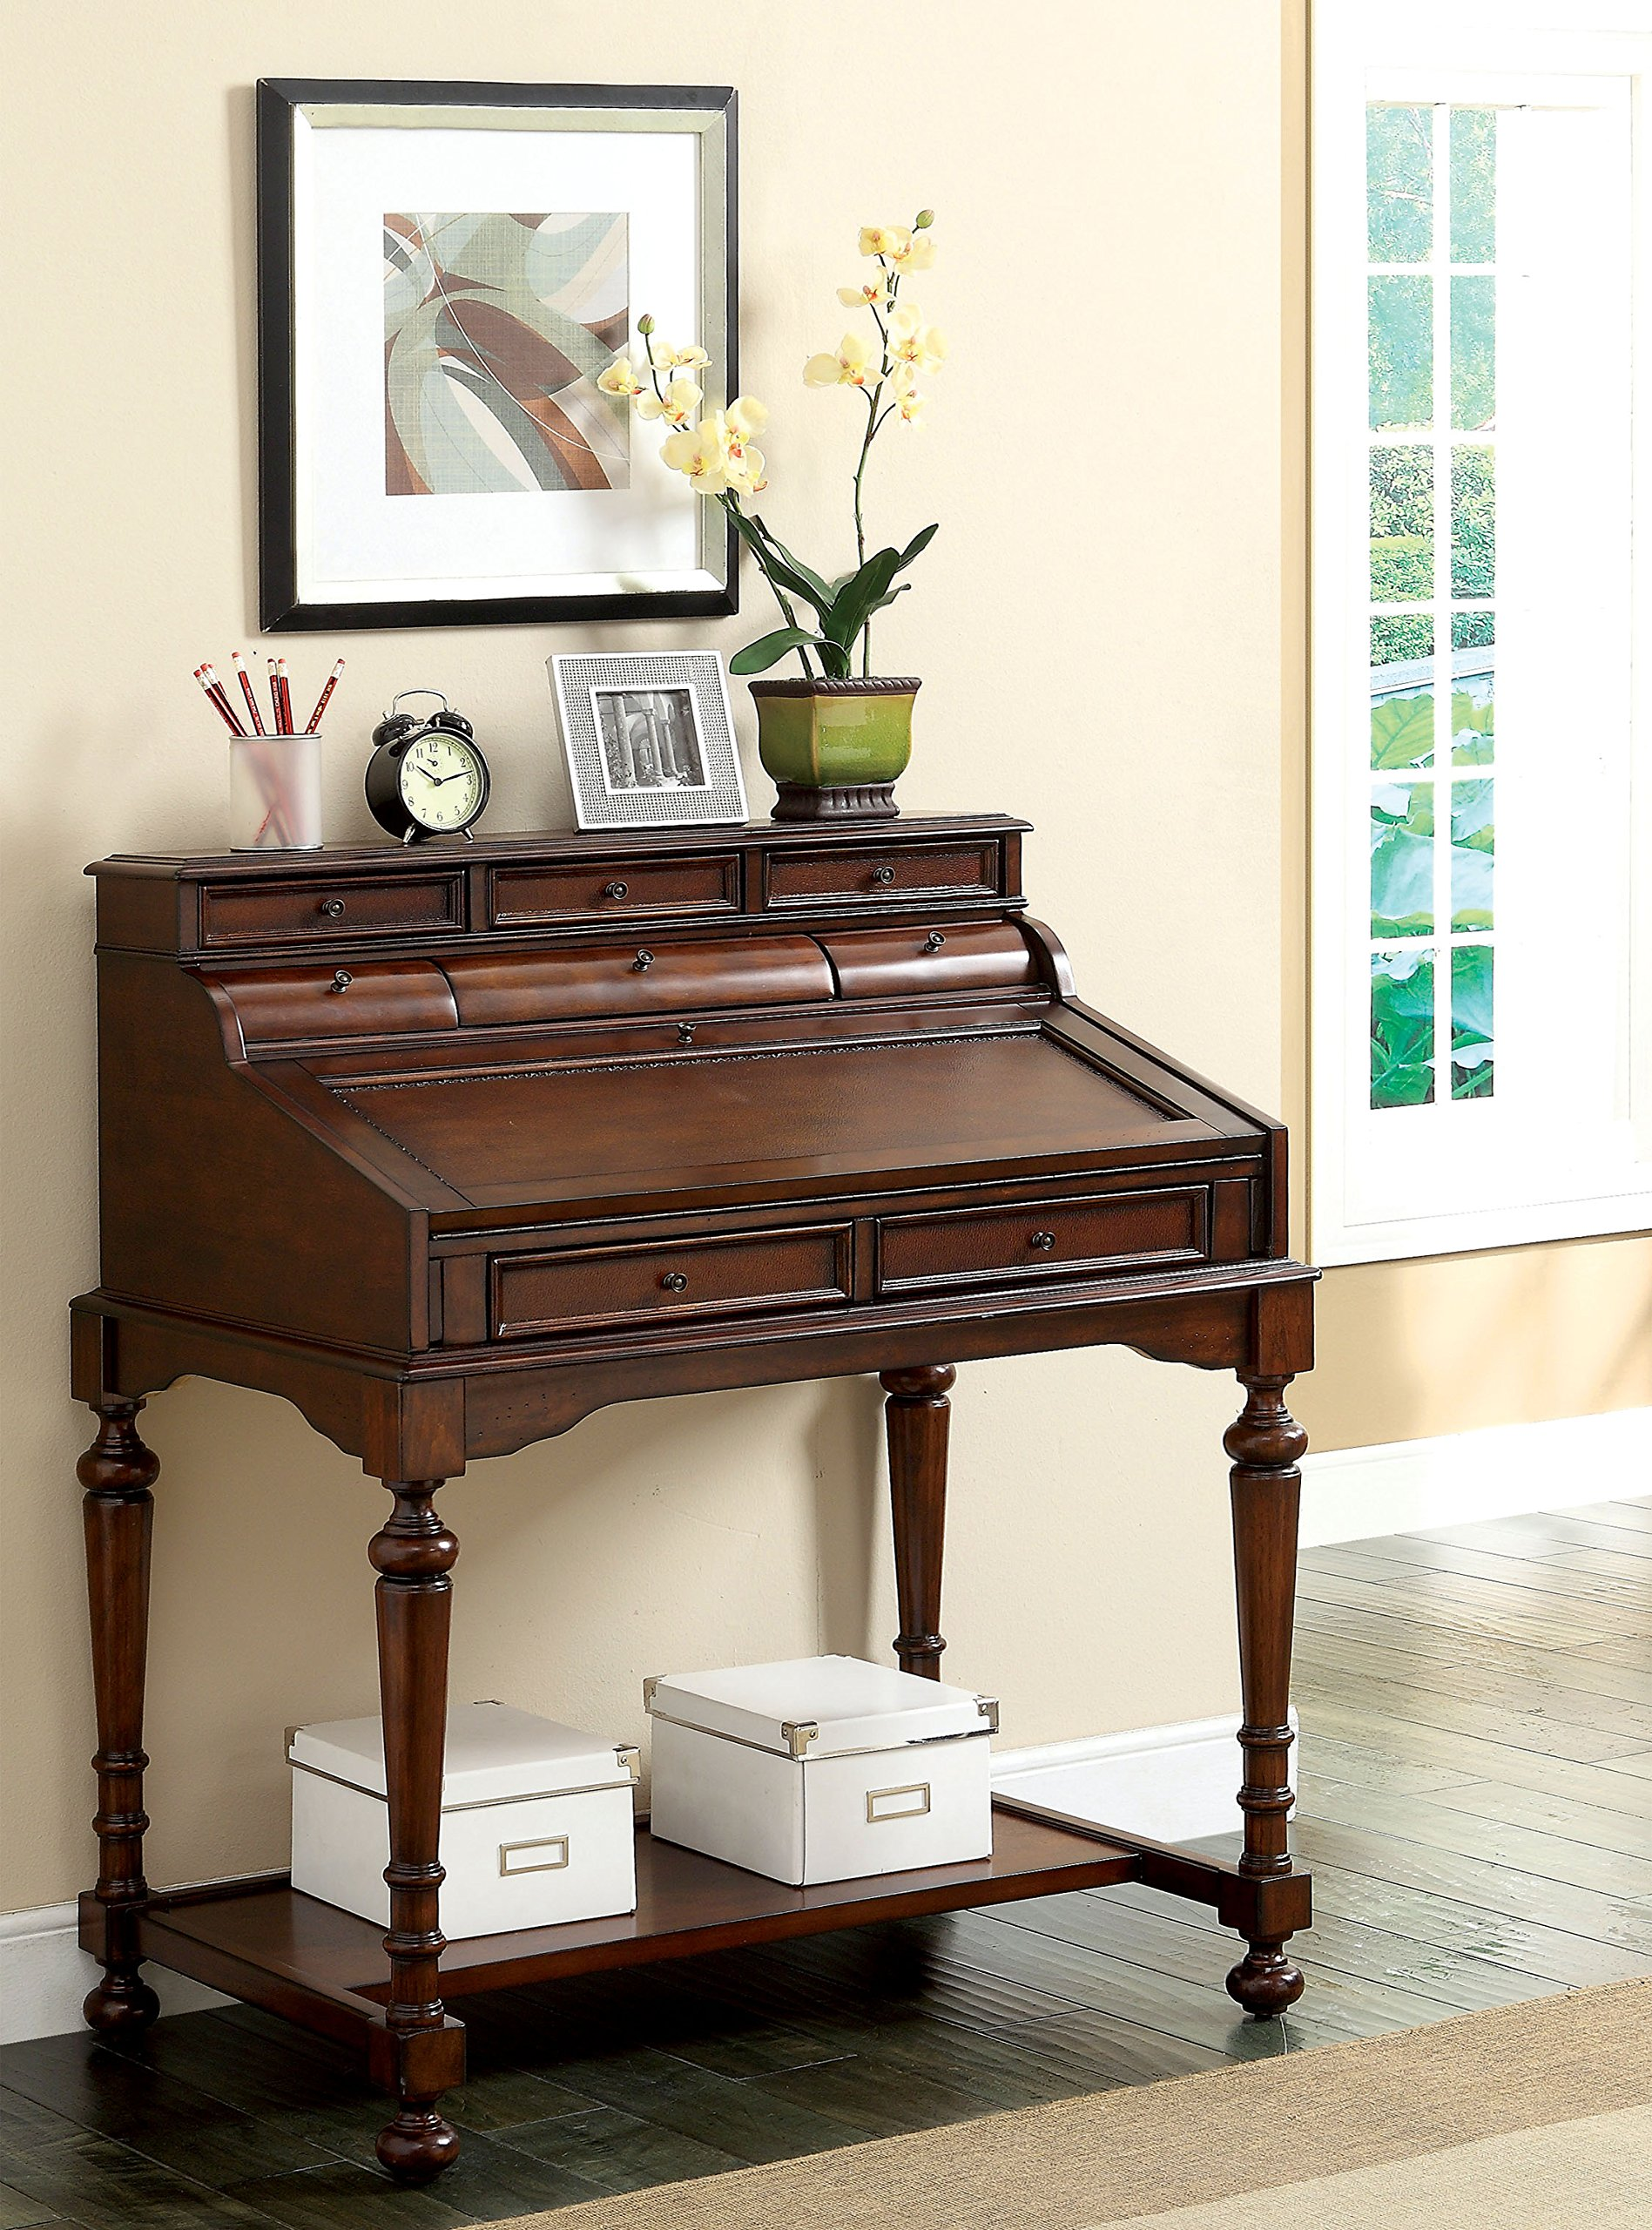 Furniture of America Elaine Traditional Secretary Desk by Furniture of America